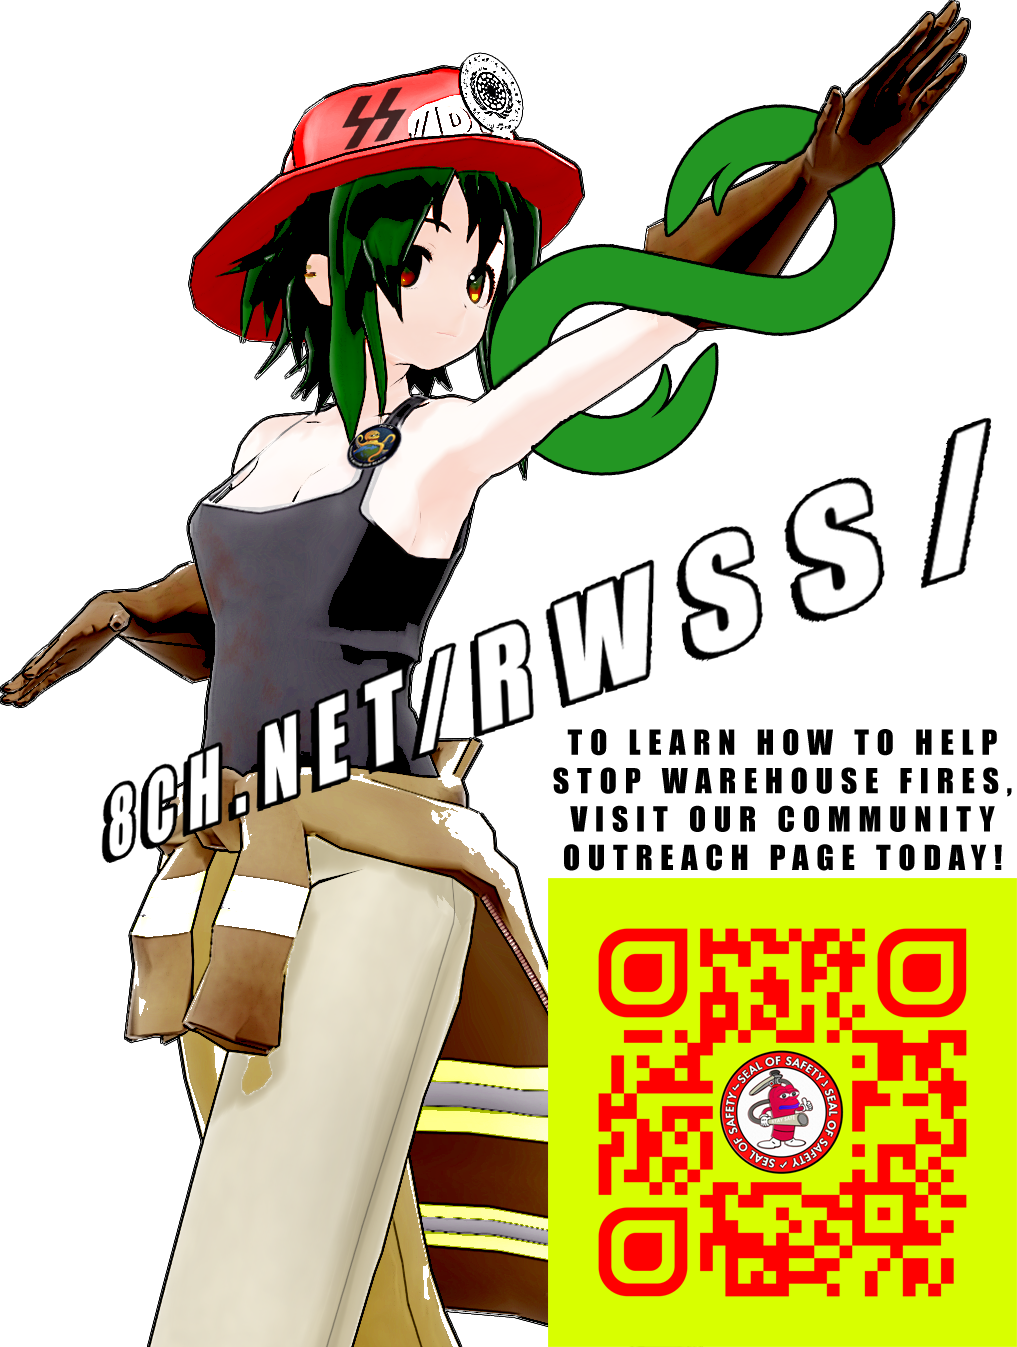 Chan wants you from. Safe clipart safety need